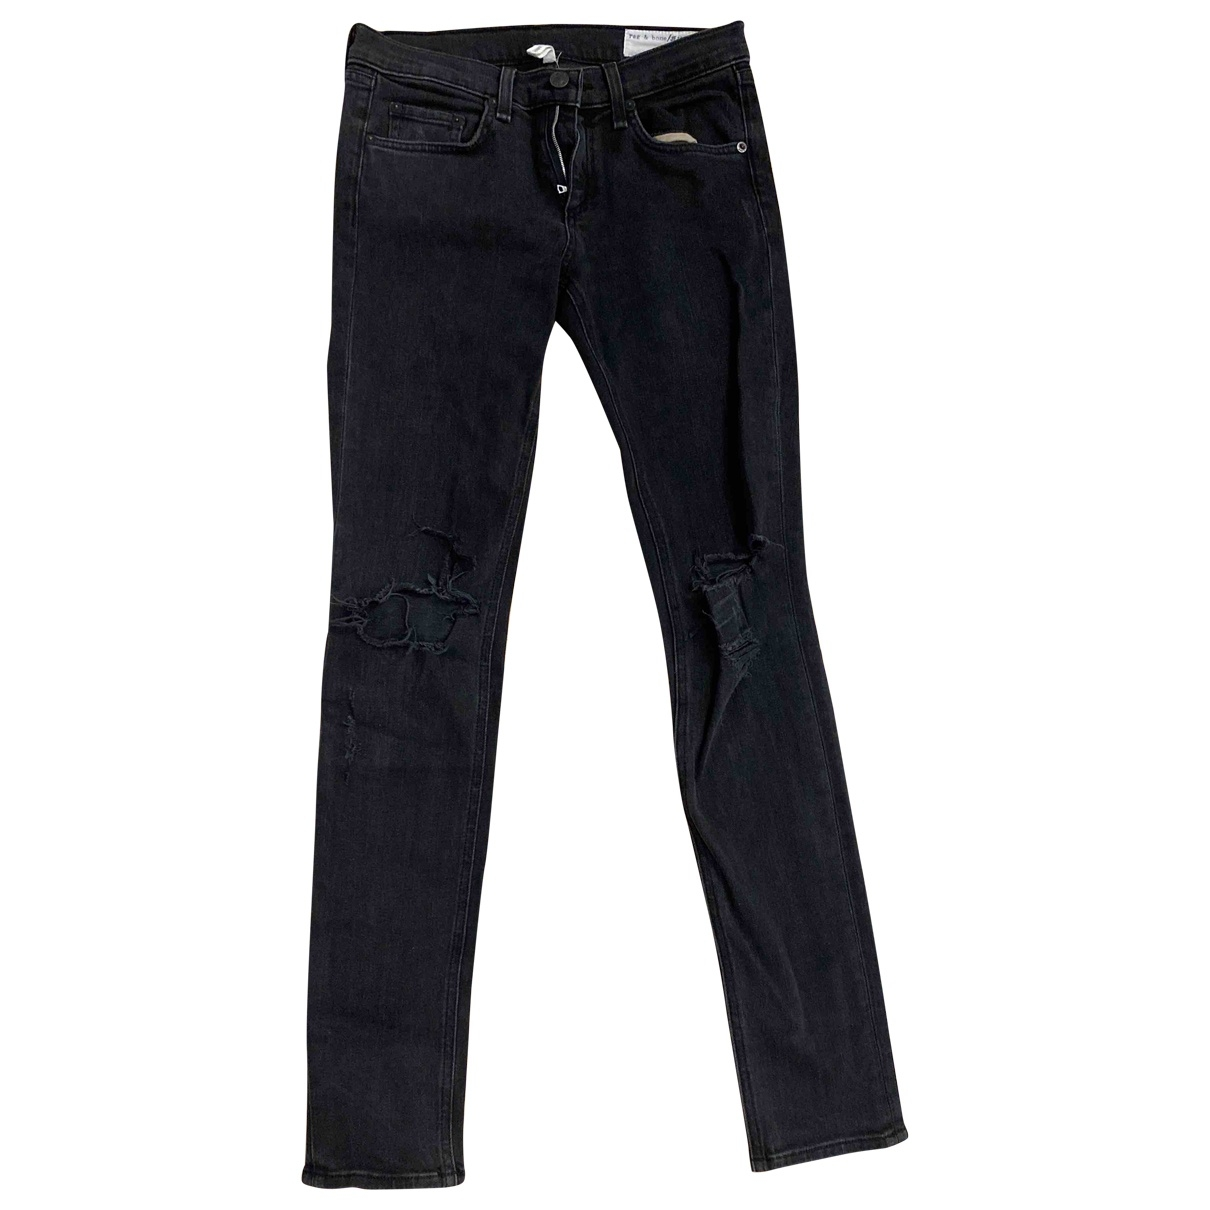 Rag & Bone \N Grey Denim - Jeans Jeans for Women 26 US